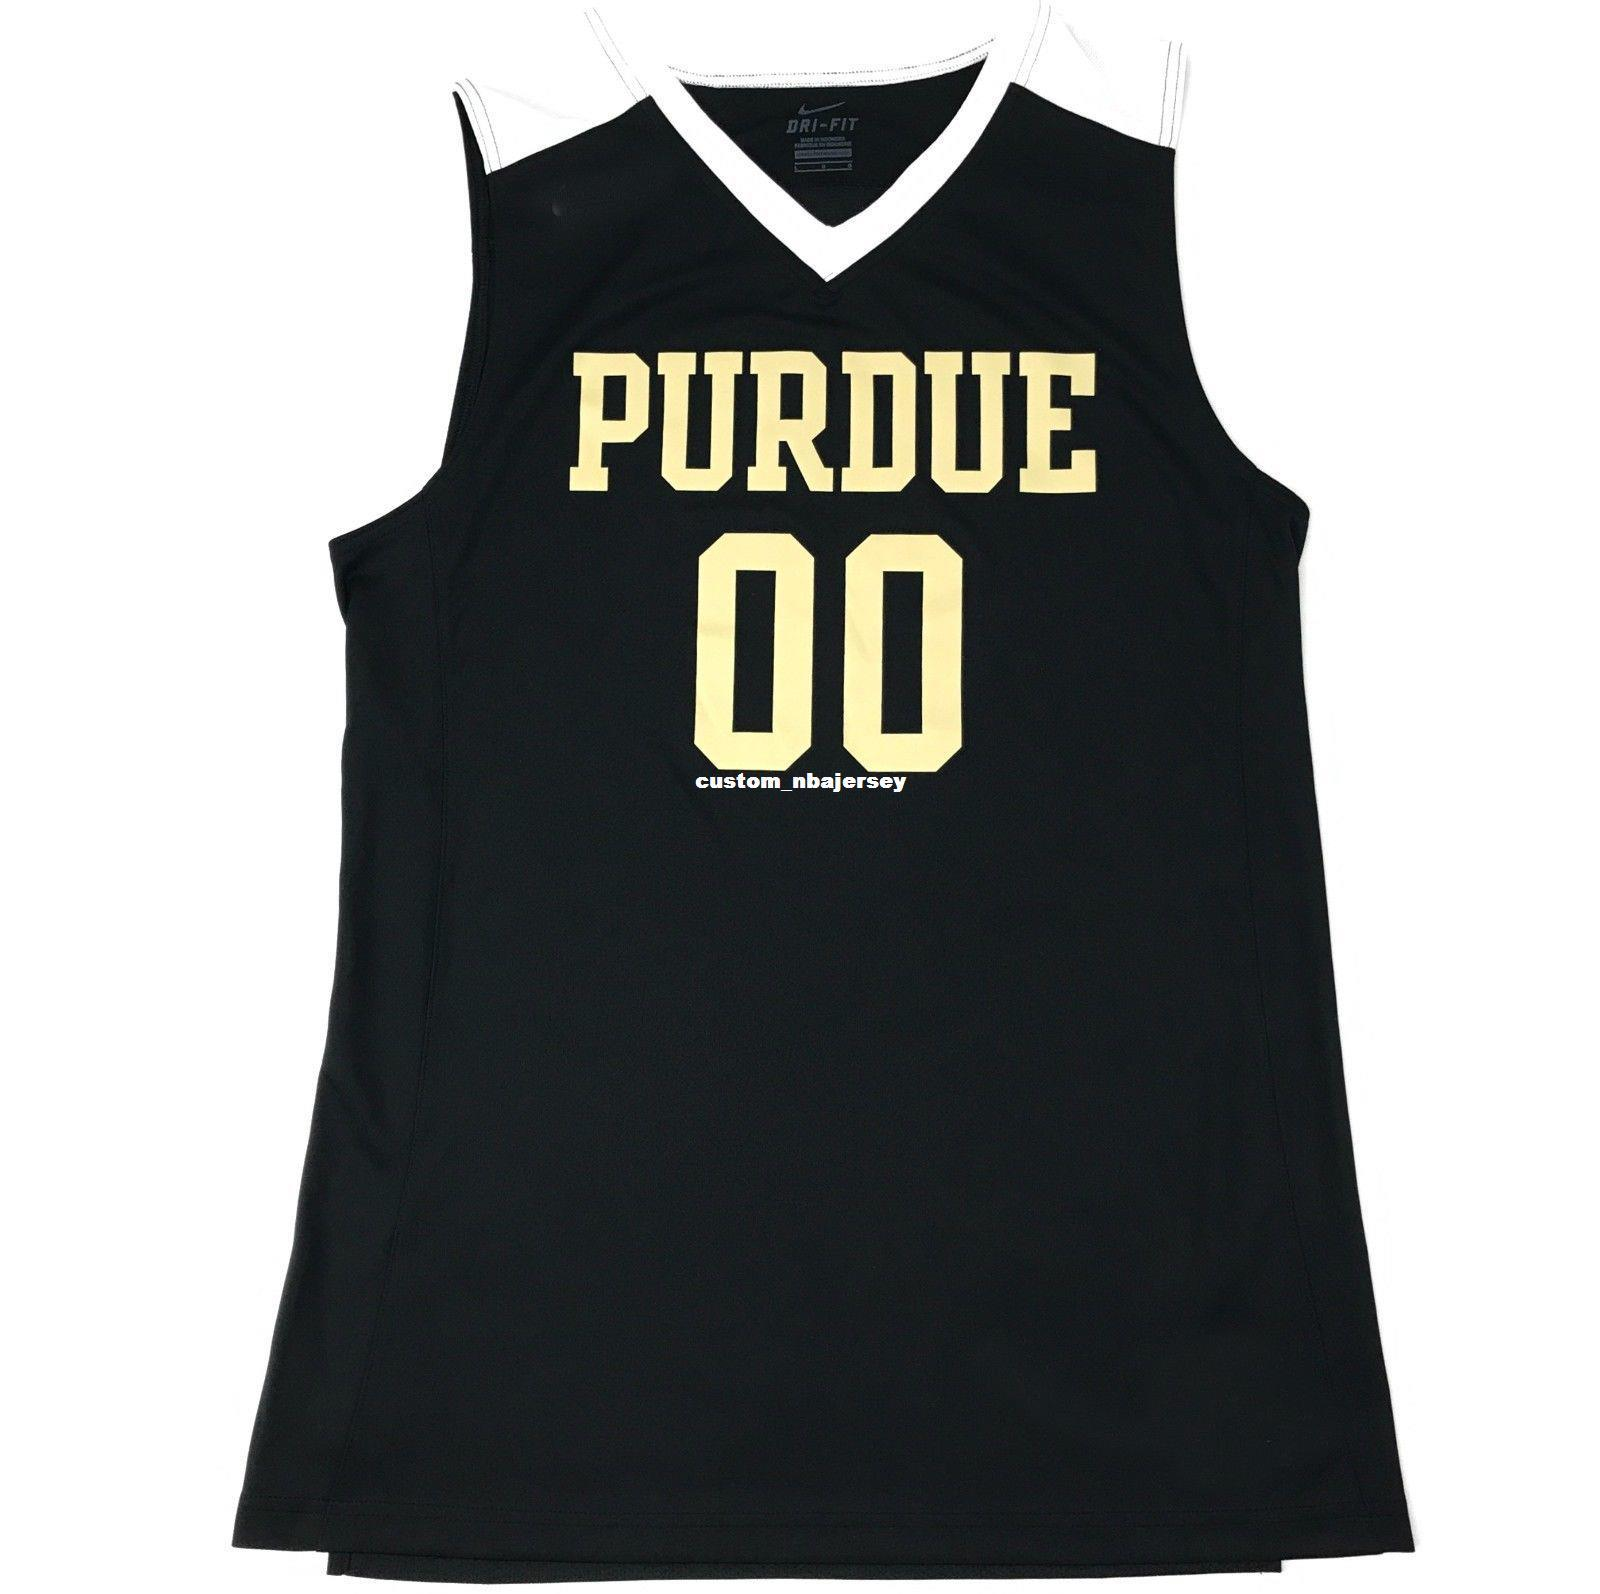 7a3fd0d53cd17 2019 Cheap Custom New Purdue Boilermakers Basketball Jersey Black Gold  White Stitched Customize Any Number Name MEN WOMEN YOUTH XS 5XL From  Custom nbajersey ...